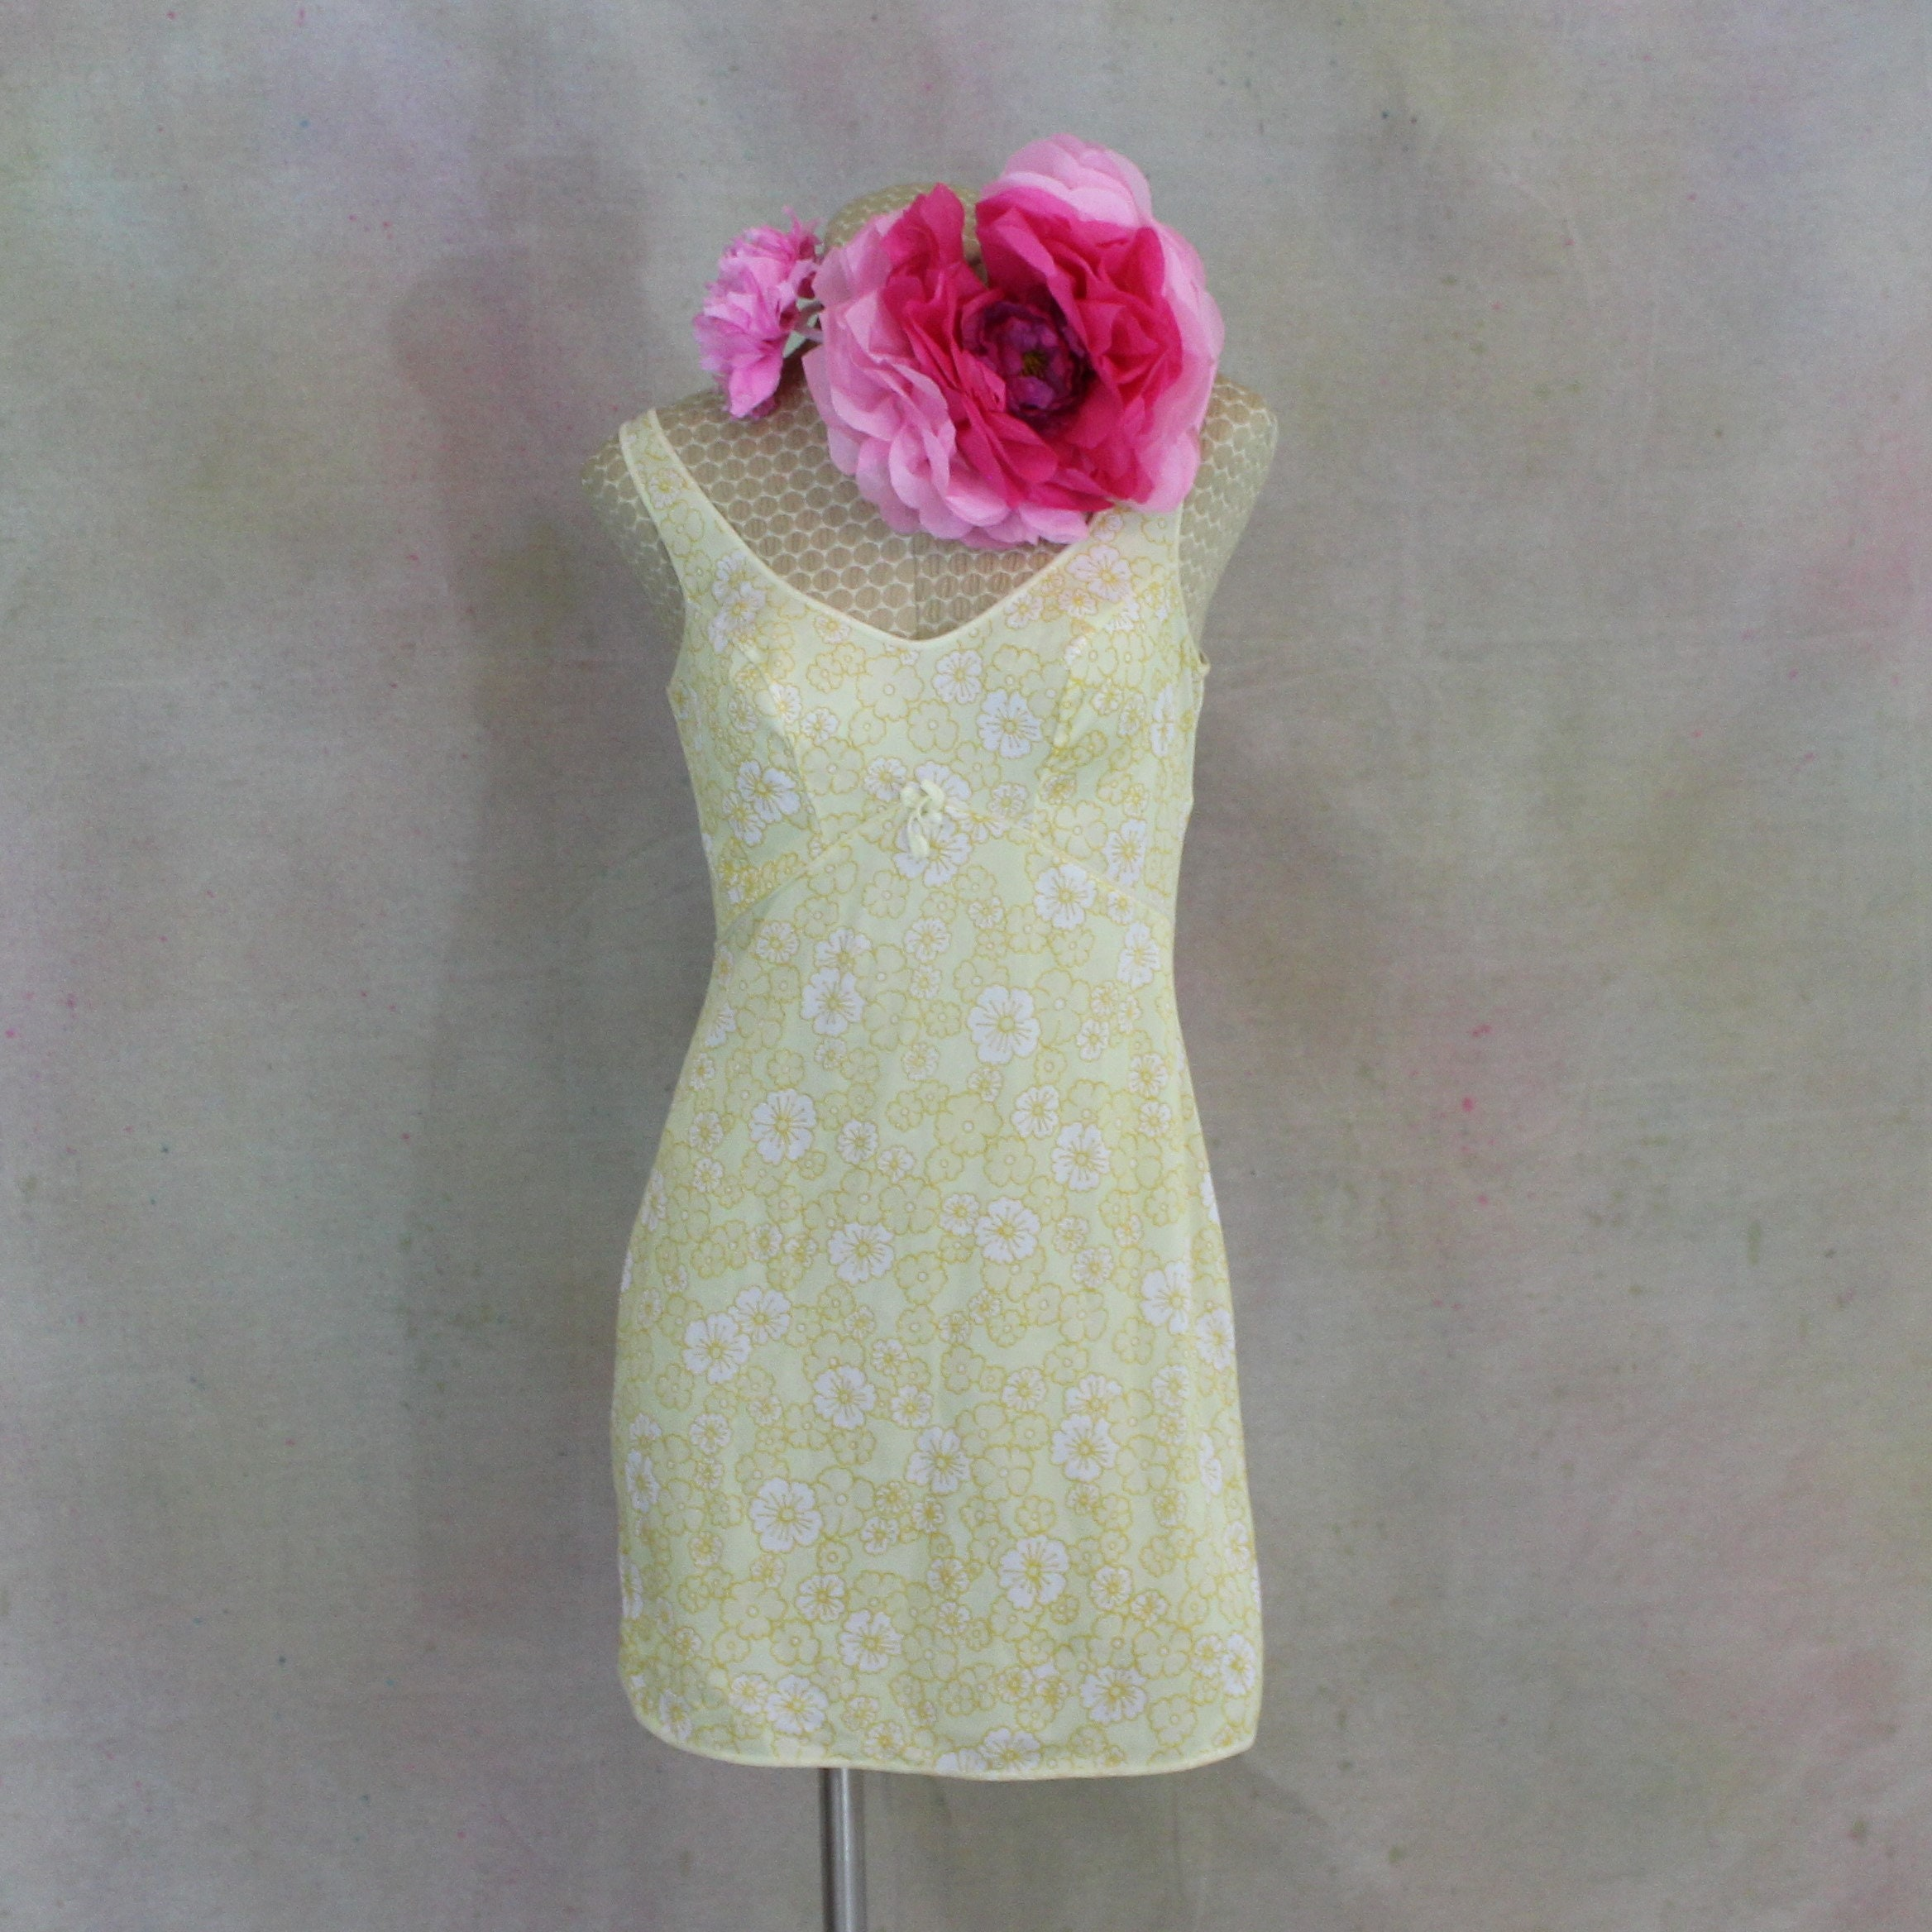 Vintage Nightgown In Pale Yellow Floral Print Size S.